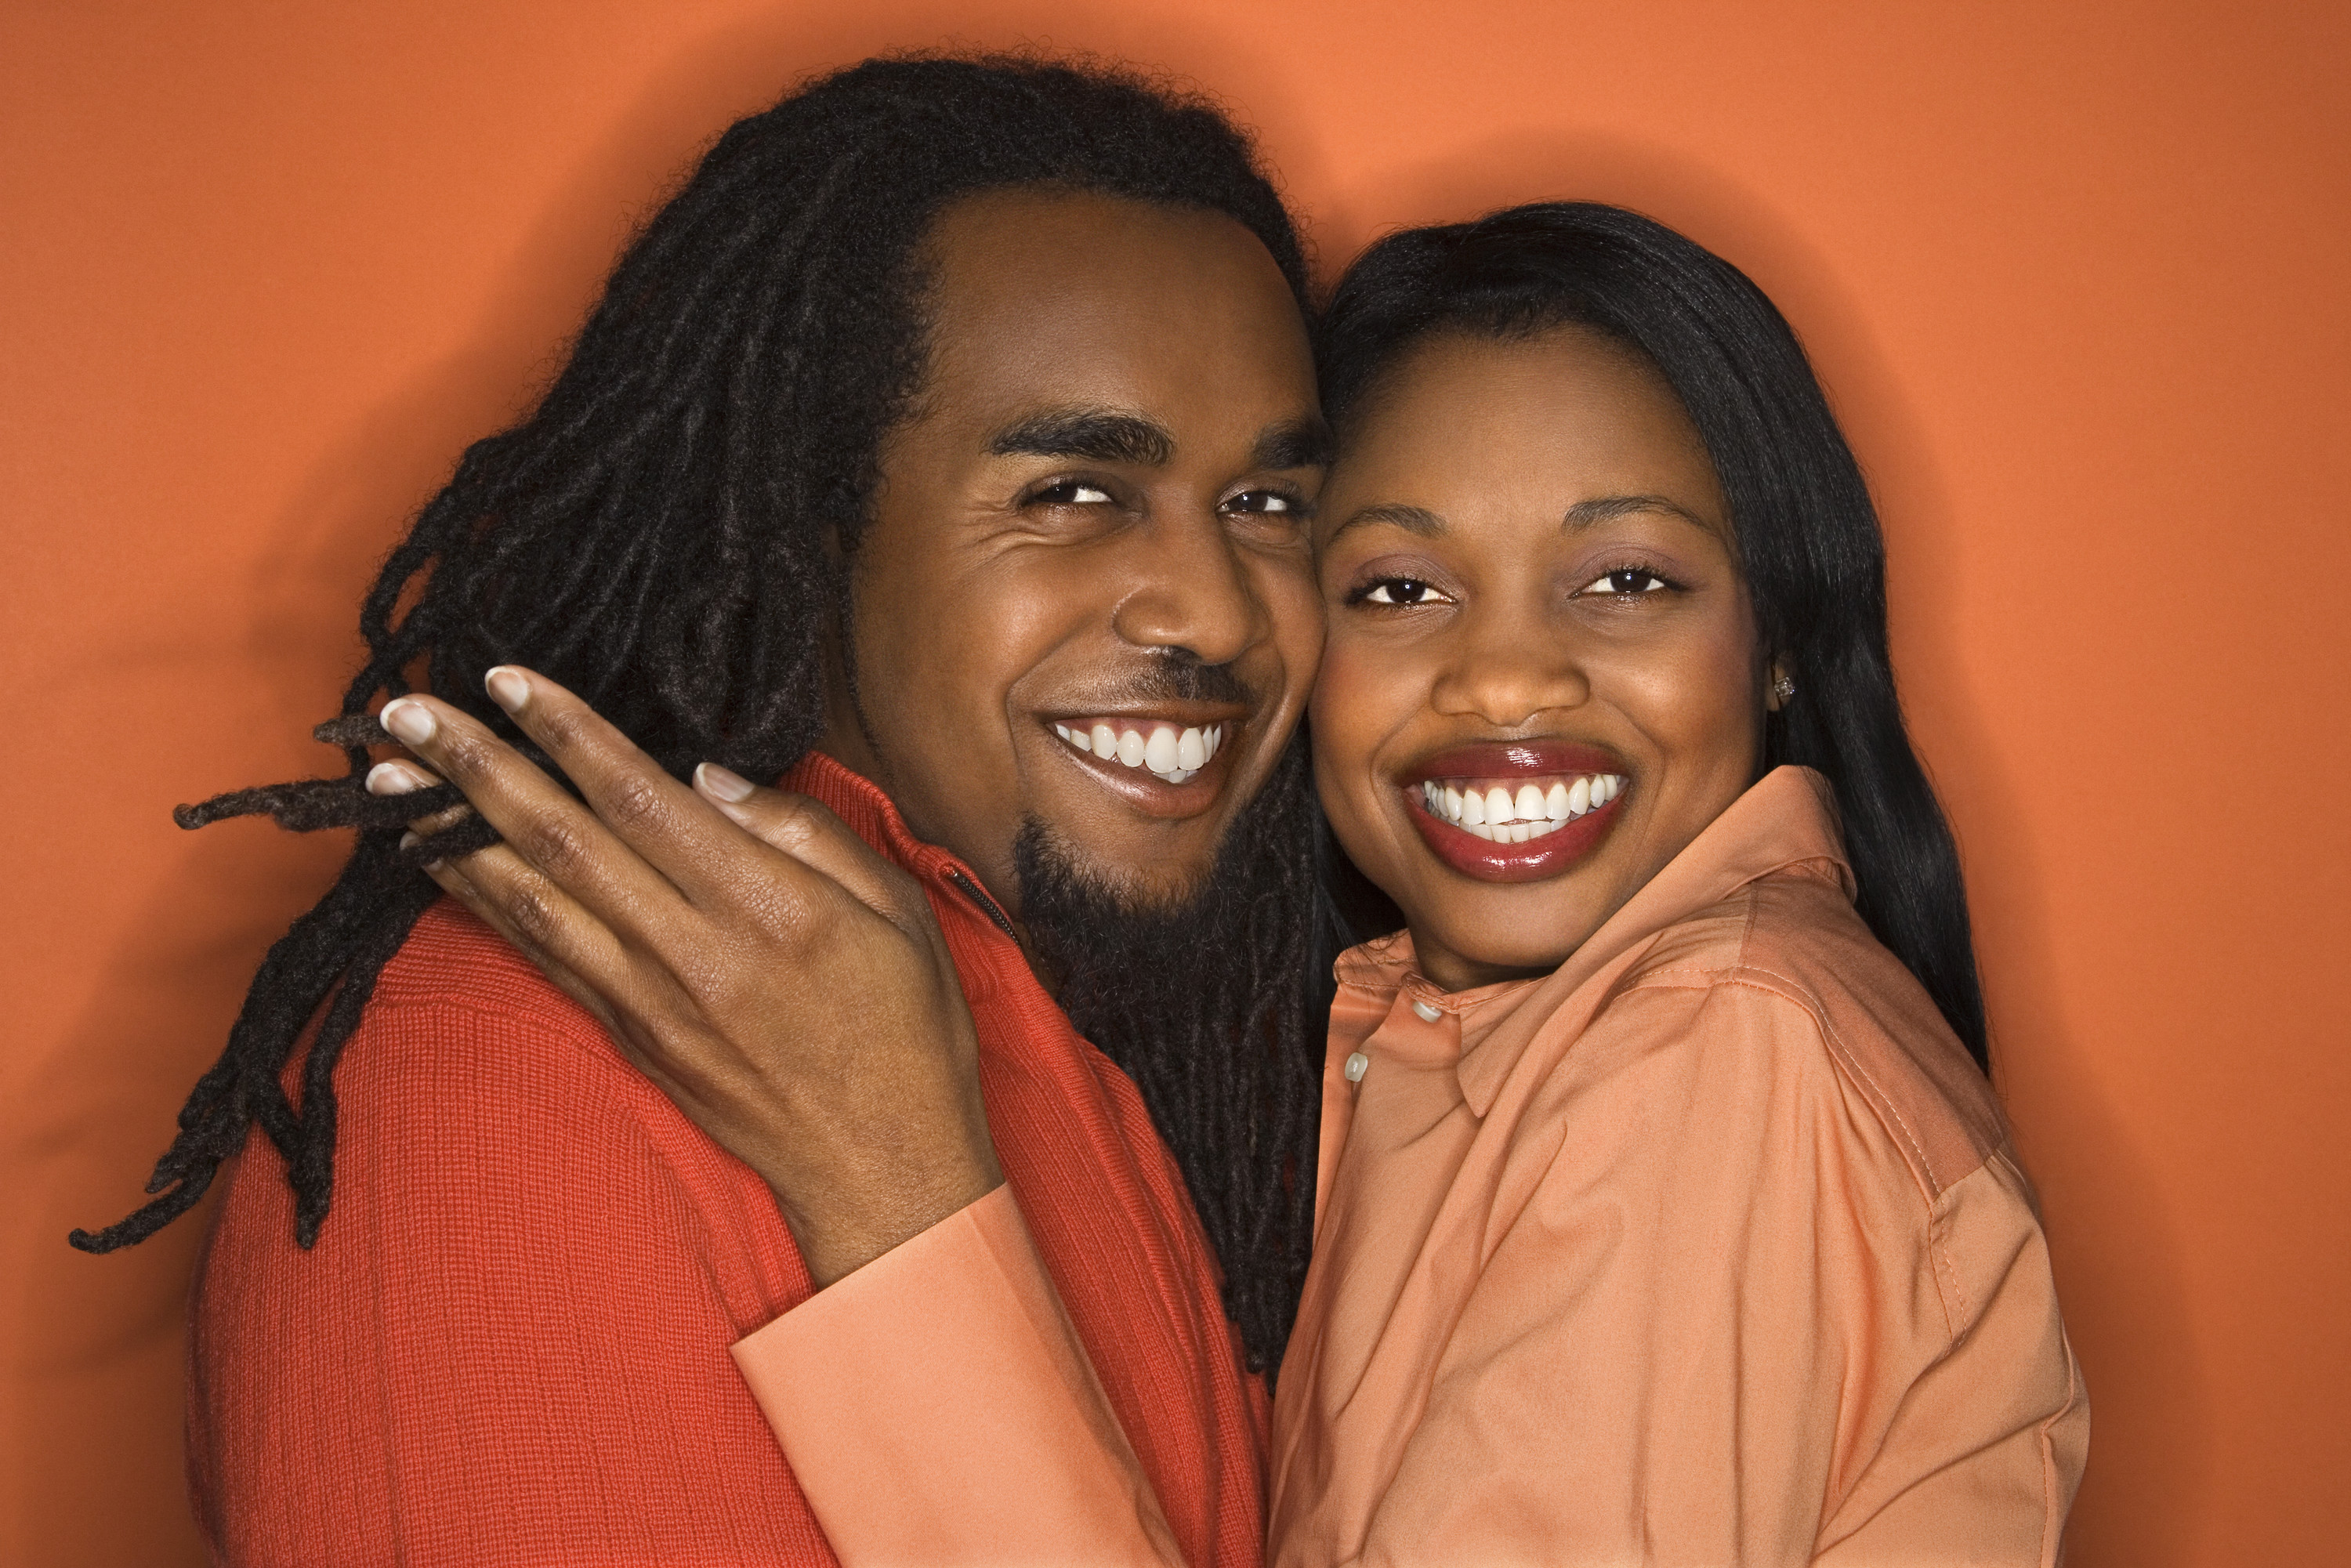 urban dating sites uk International - black dating blackcupid is part of the well-established cupid media network that operates over 30 reputable niche dating sites.